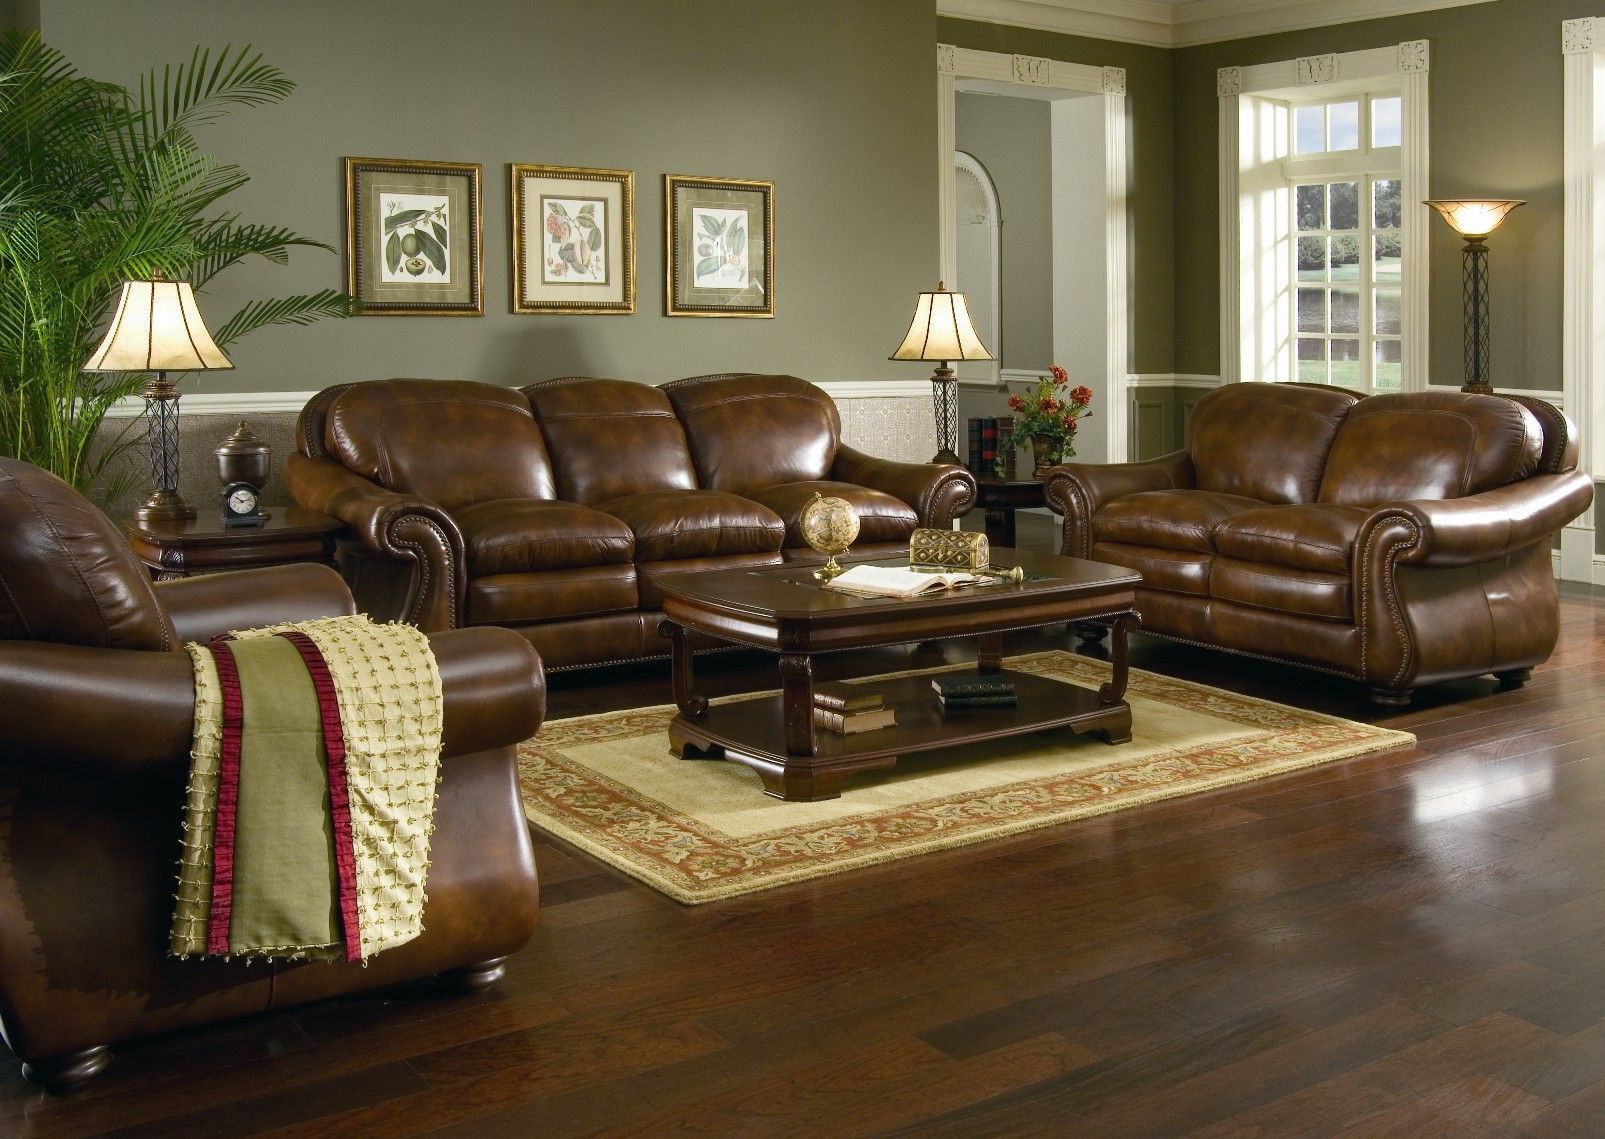 Living Room Sectional Design Ideas wonderful furniture stores living room project for awesome Brown Leather Sofa Set For Living Room With Dark Hardwood Floors